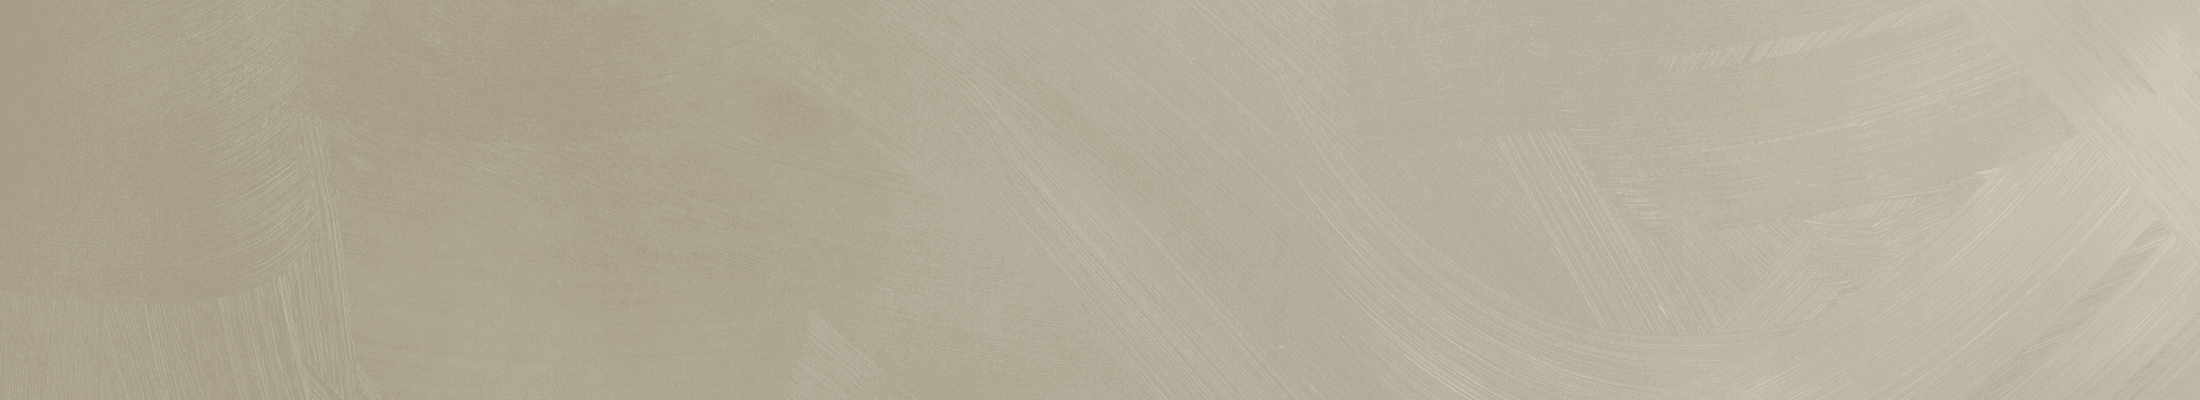 cream color banner